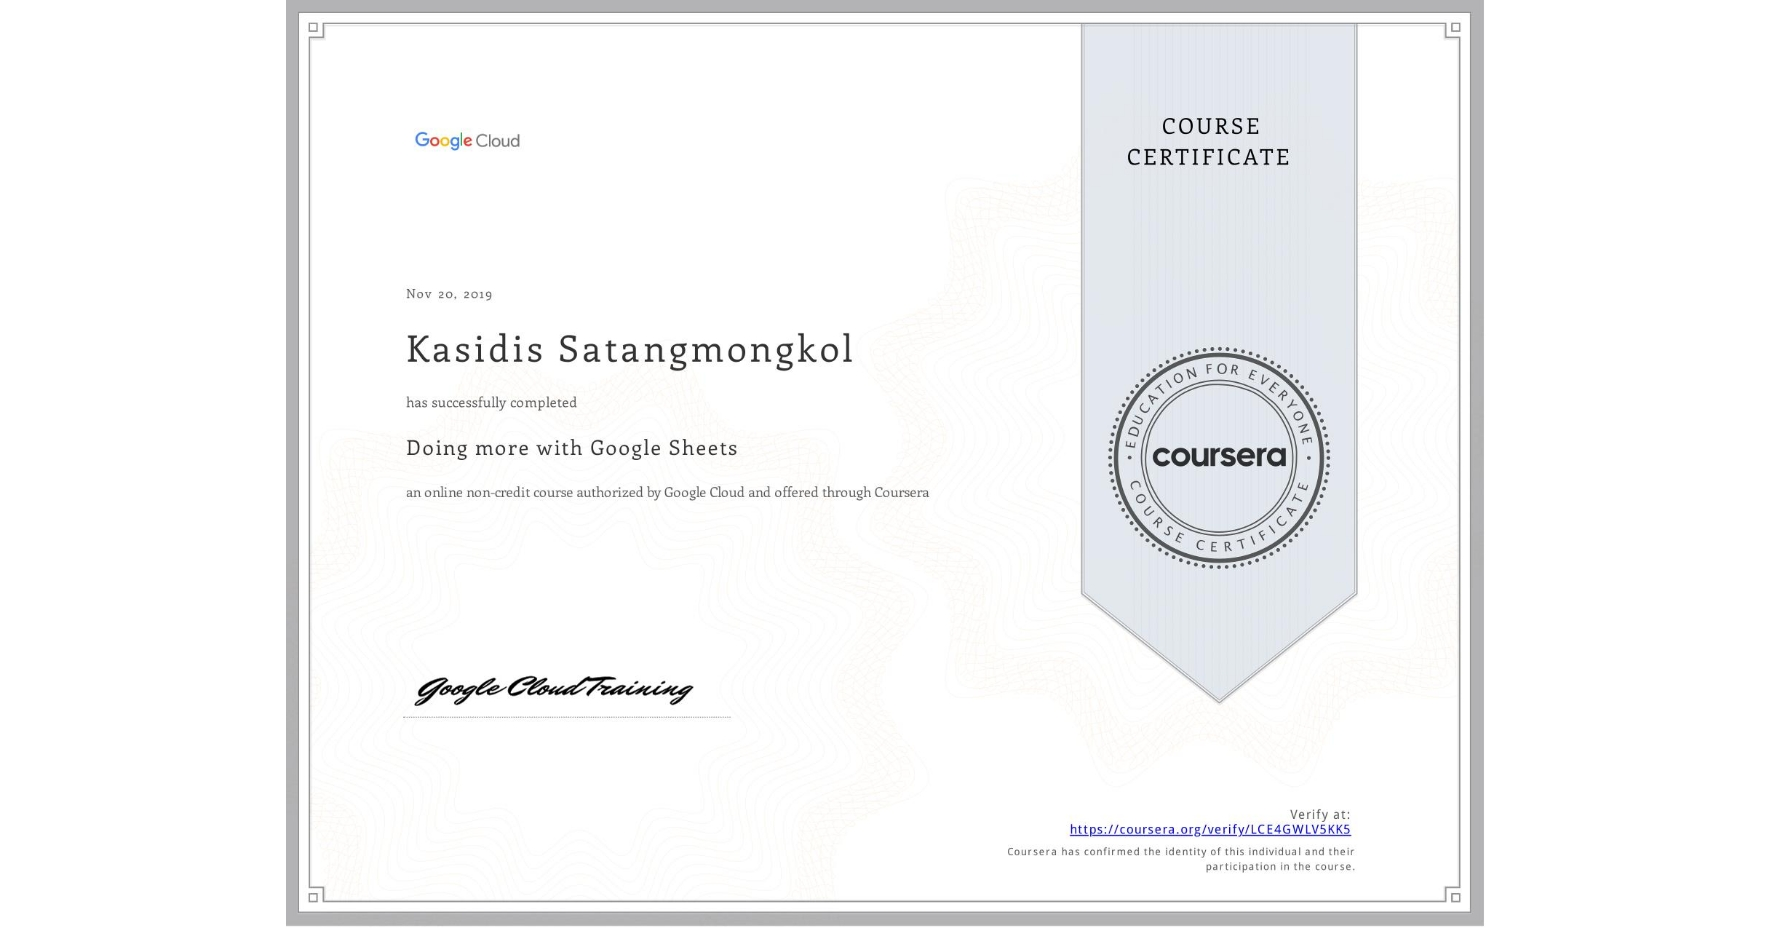 View certificate for Kasidis Satangmongkol, Getting Started with Google Sheets, an online non-credit course authorized by Google Cloud and offered through Coursera